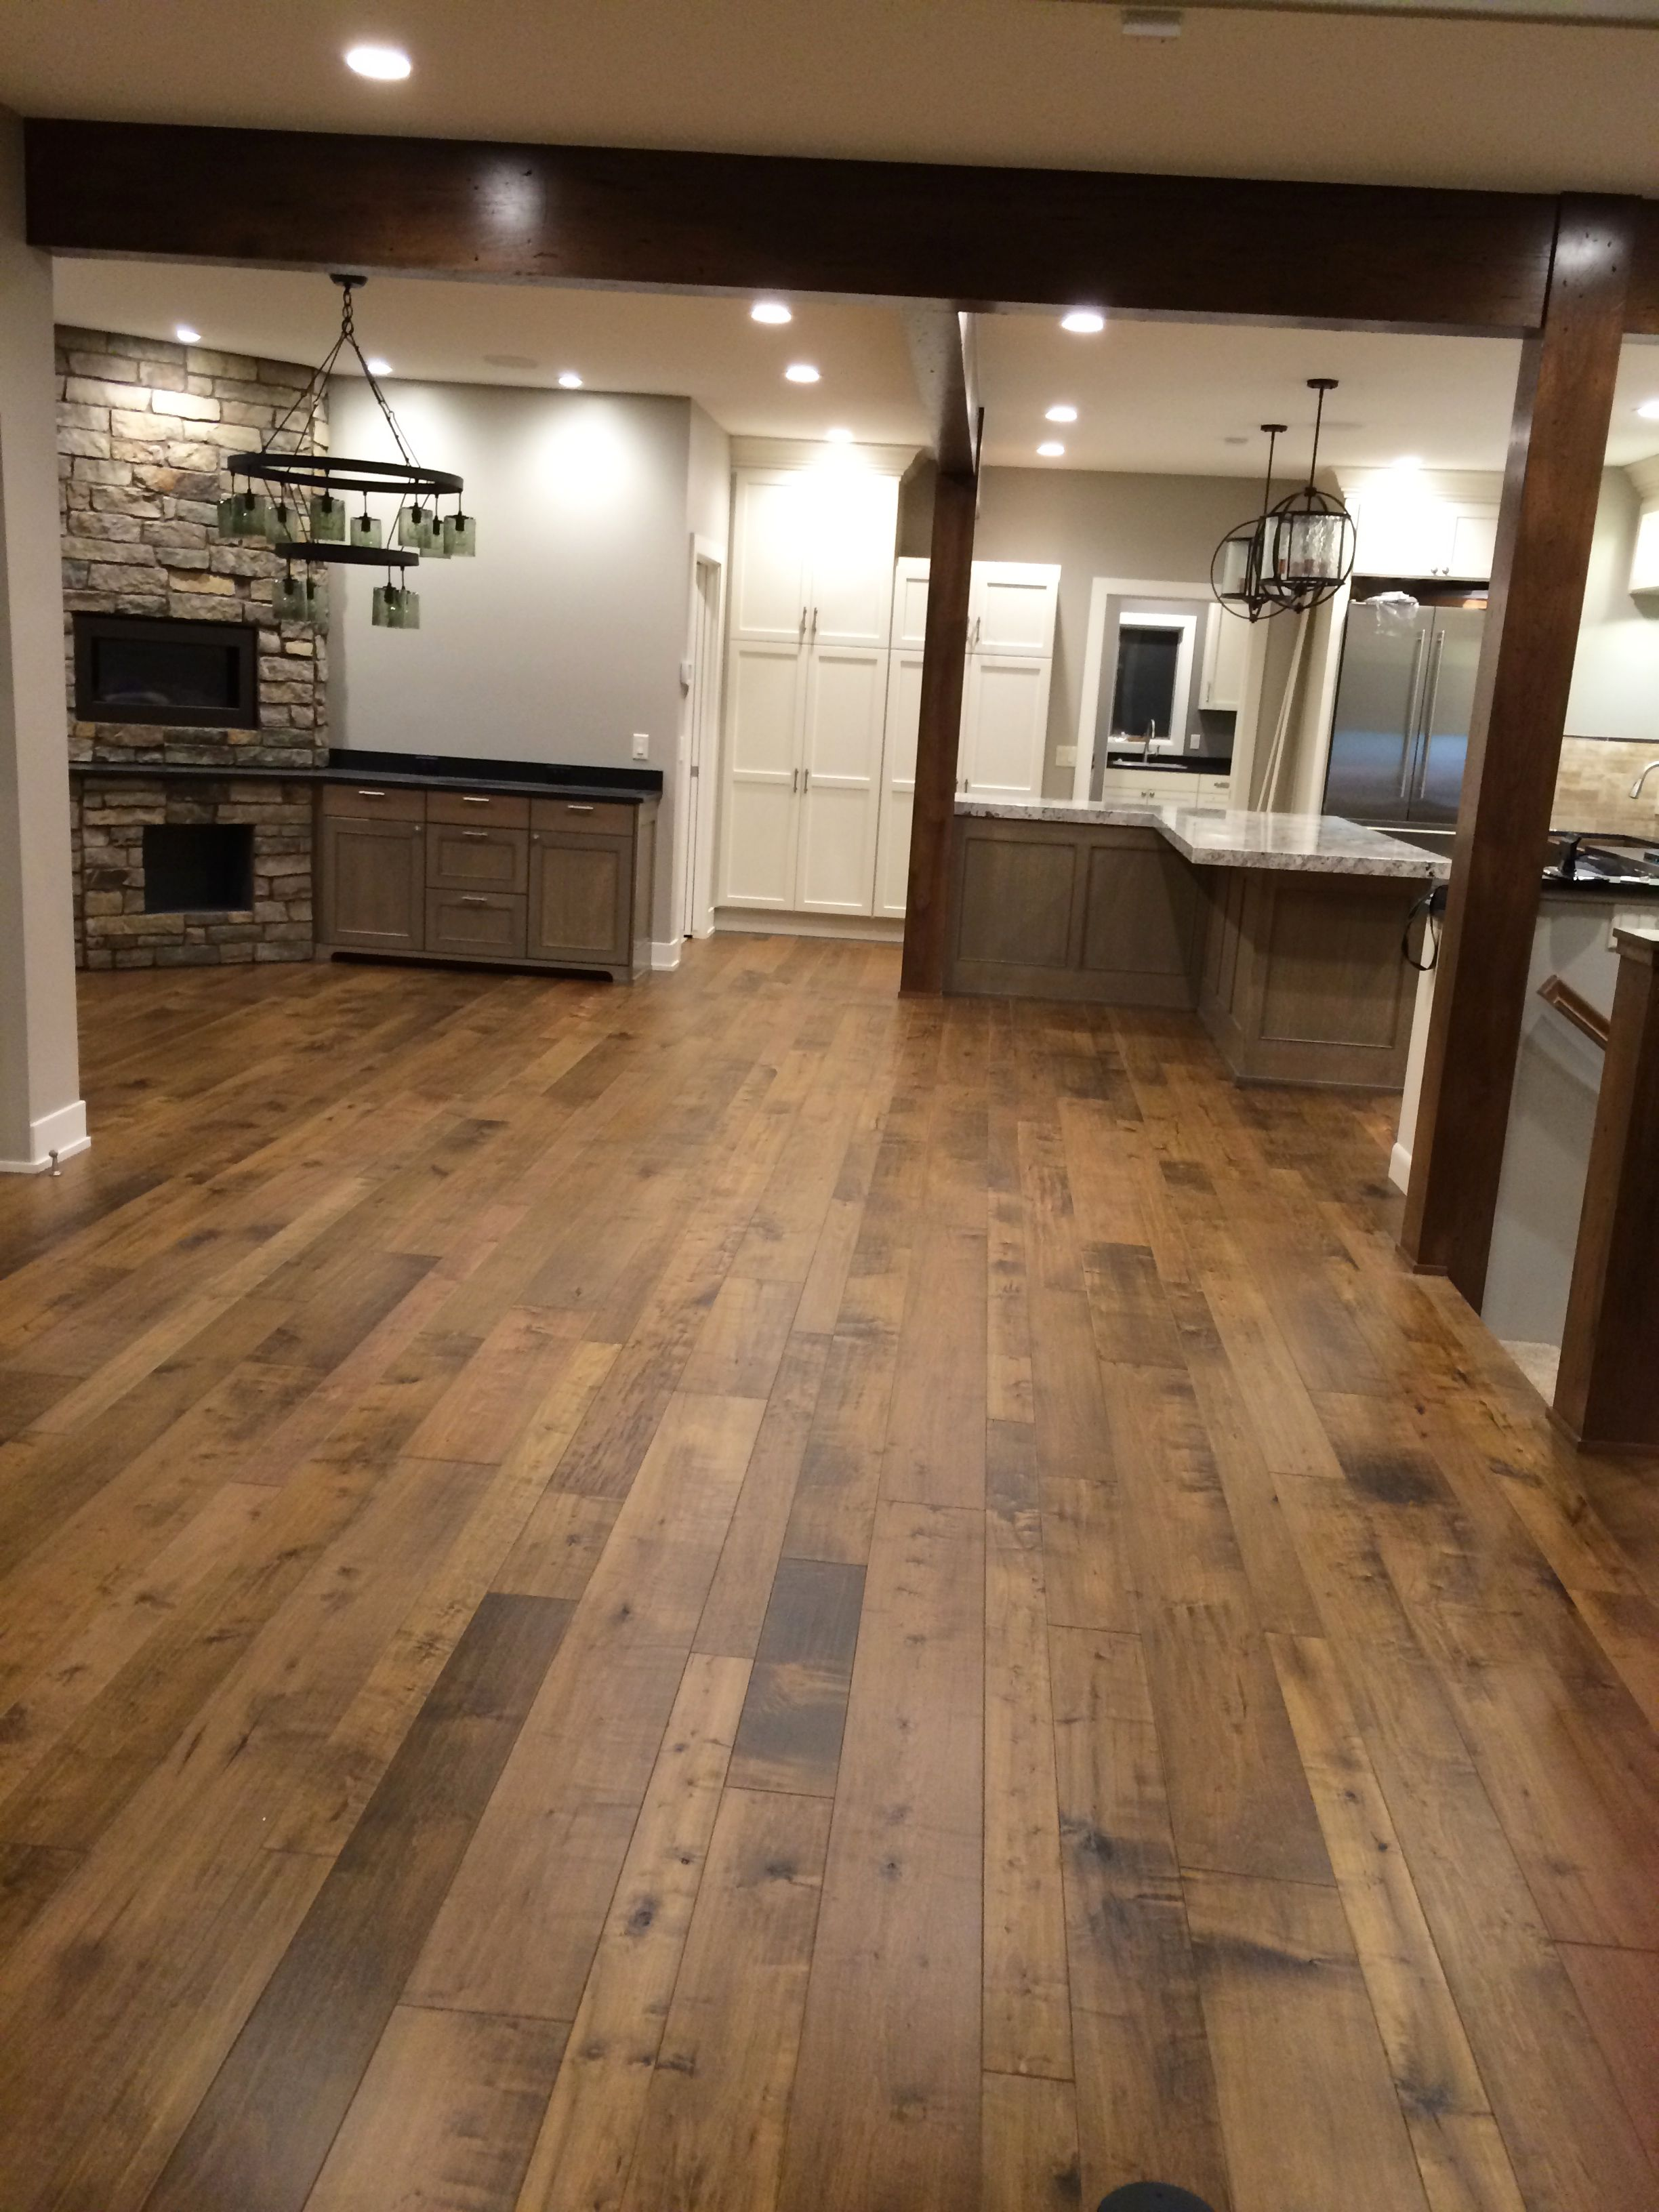 Why most house owner prefers oak hardwood floor?